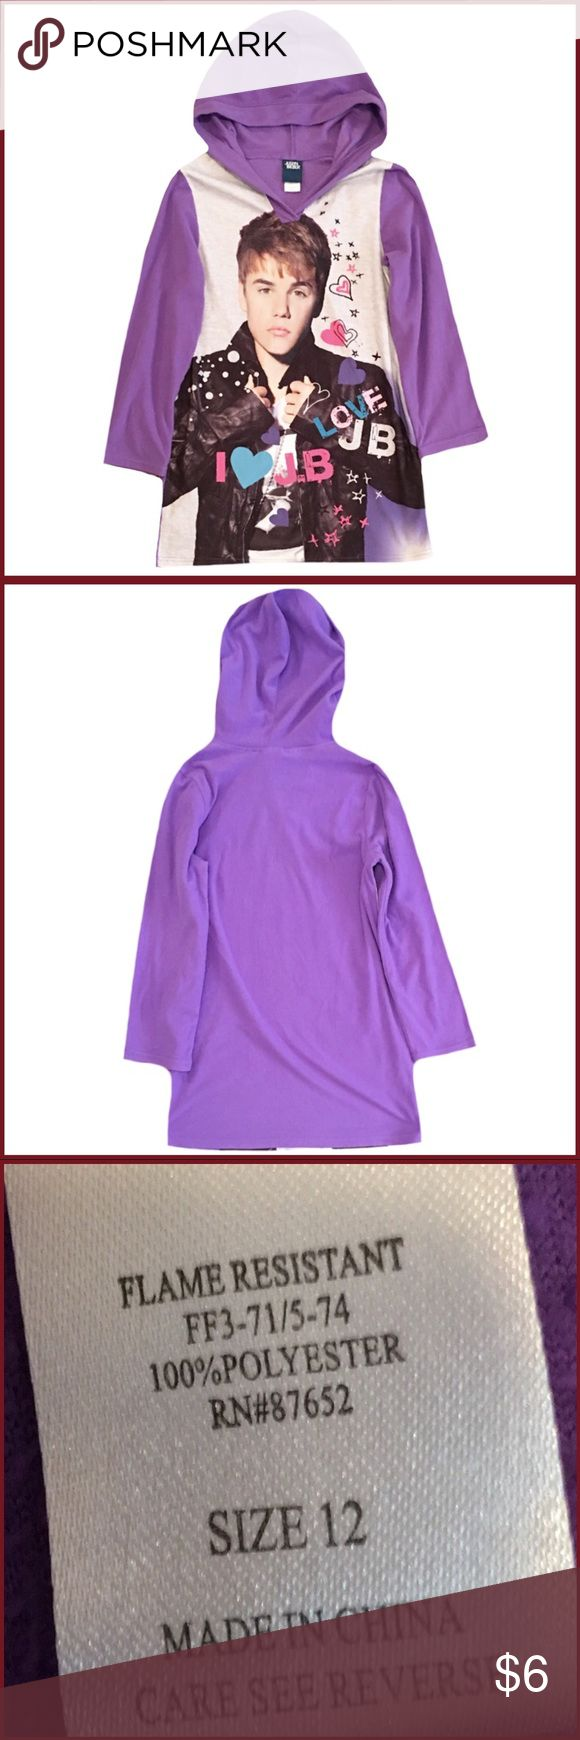 Justin Bieber Girl's Size 12 Nightgown Gently used Justin Bieber girl's size 12 long sleeve hooded purple nightgown. Made with 100% Polyester Justin Bieber Pajamas Nightgowns